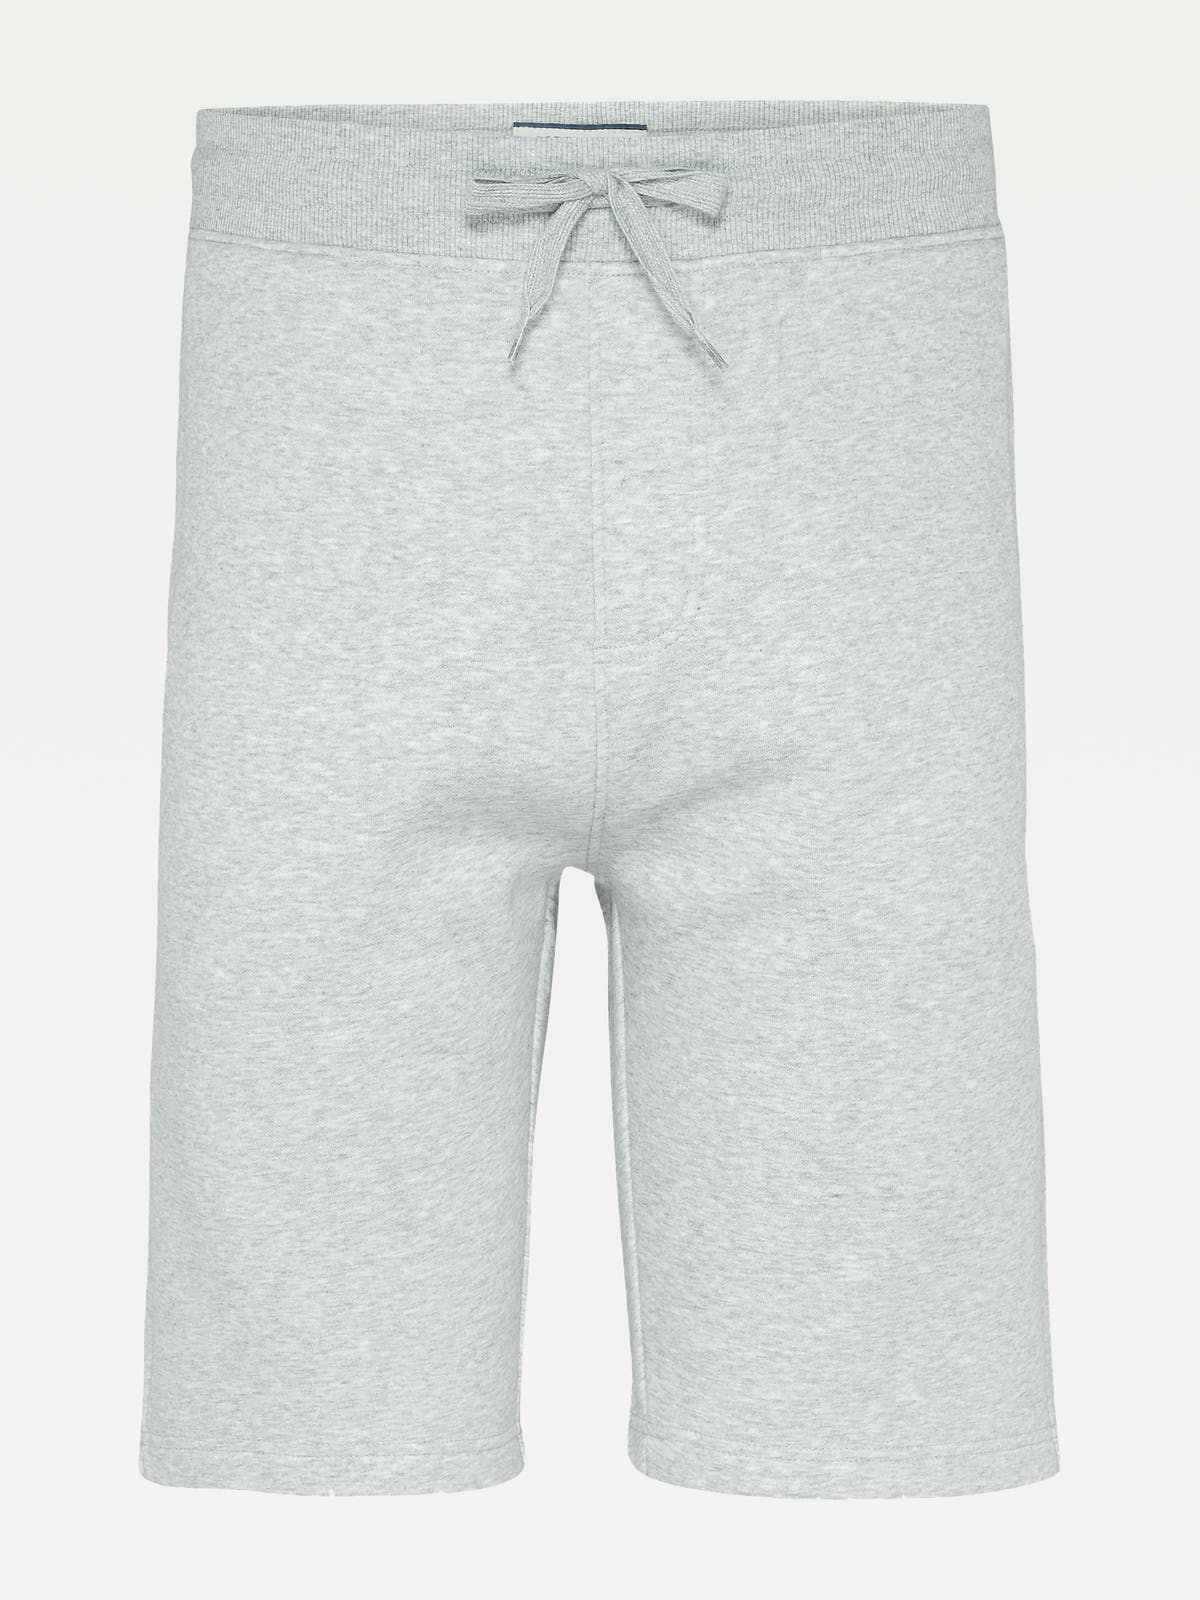 CLASSIC MONOGRAM EMBROIDERY RELAXED FIT SHORTS